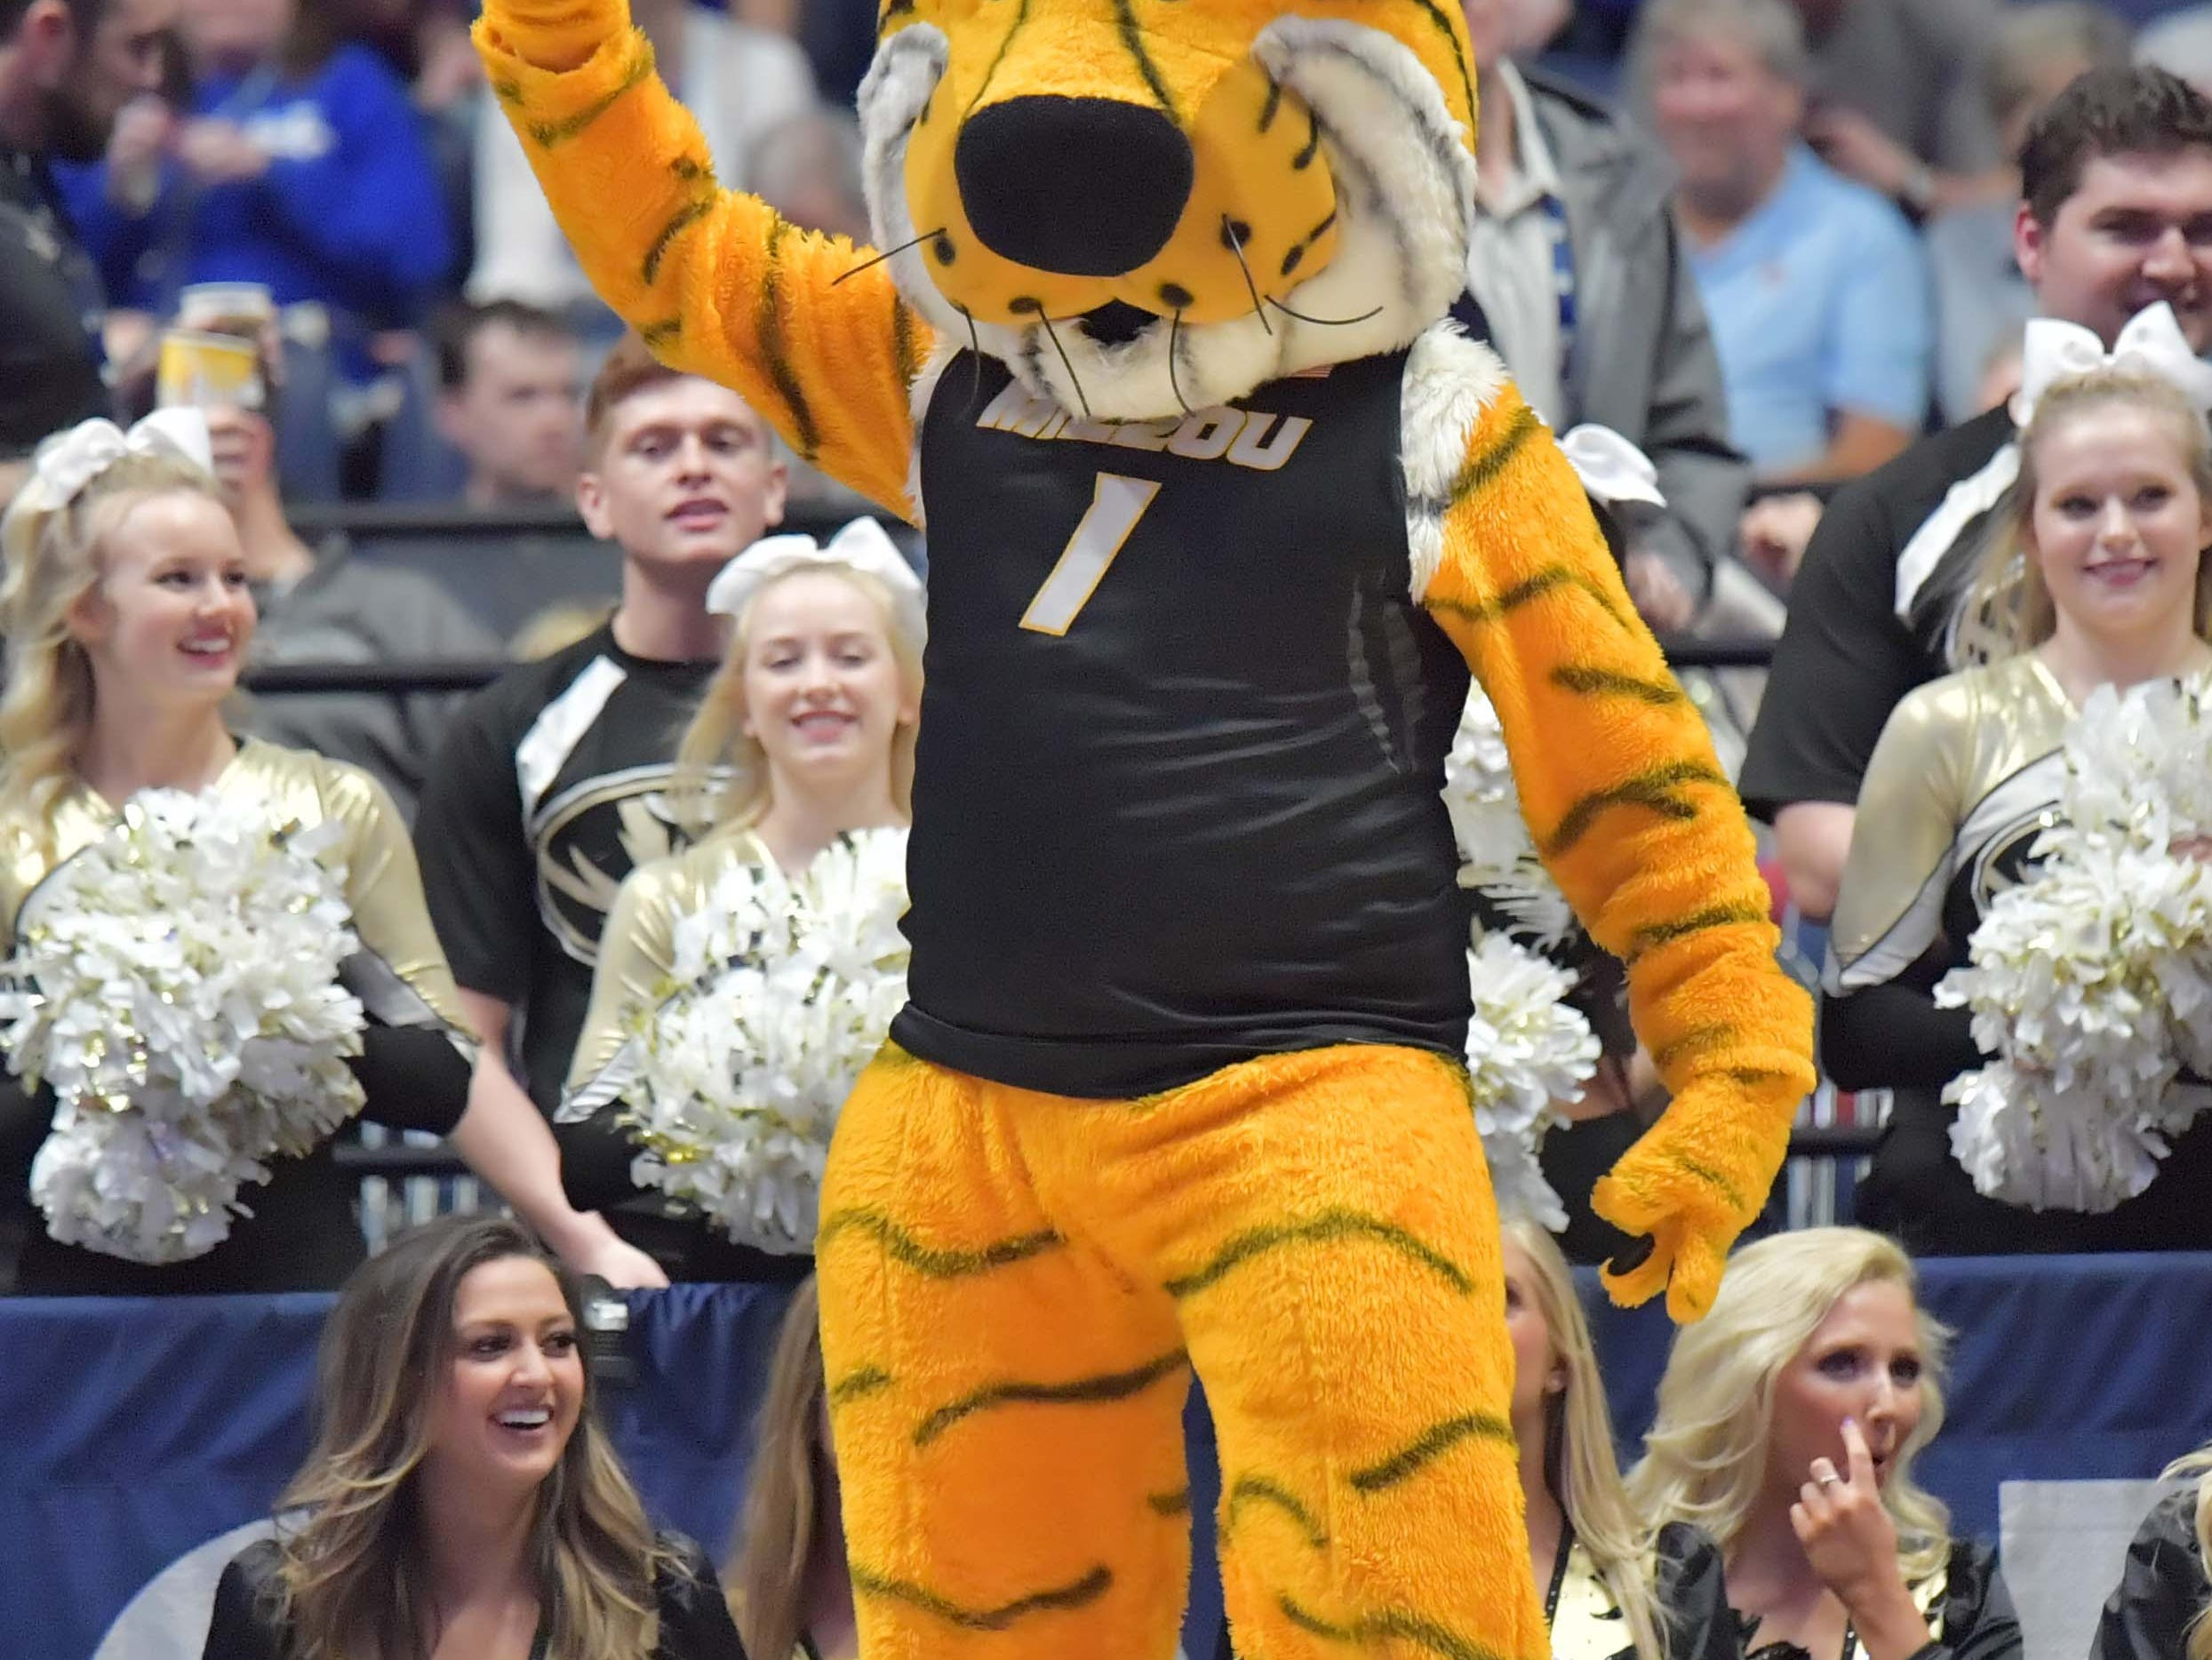 Mar 14, 2019; Nashville, TN, USA; Missouri Tigers mascot poses in the first half against the Auburn Tigers in the SEC conference tournament at Bridgestone Arena. Mandatory Credit: Jim Brown-USA TODAY Sports